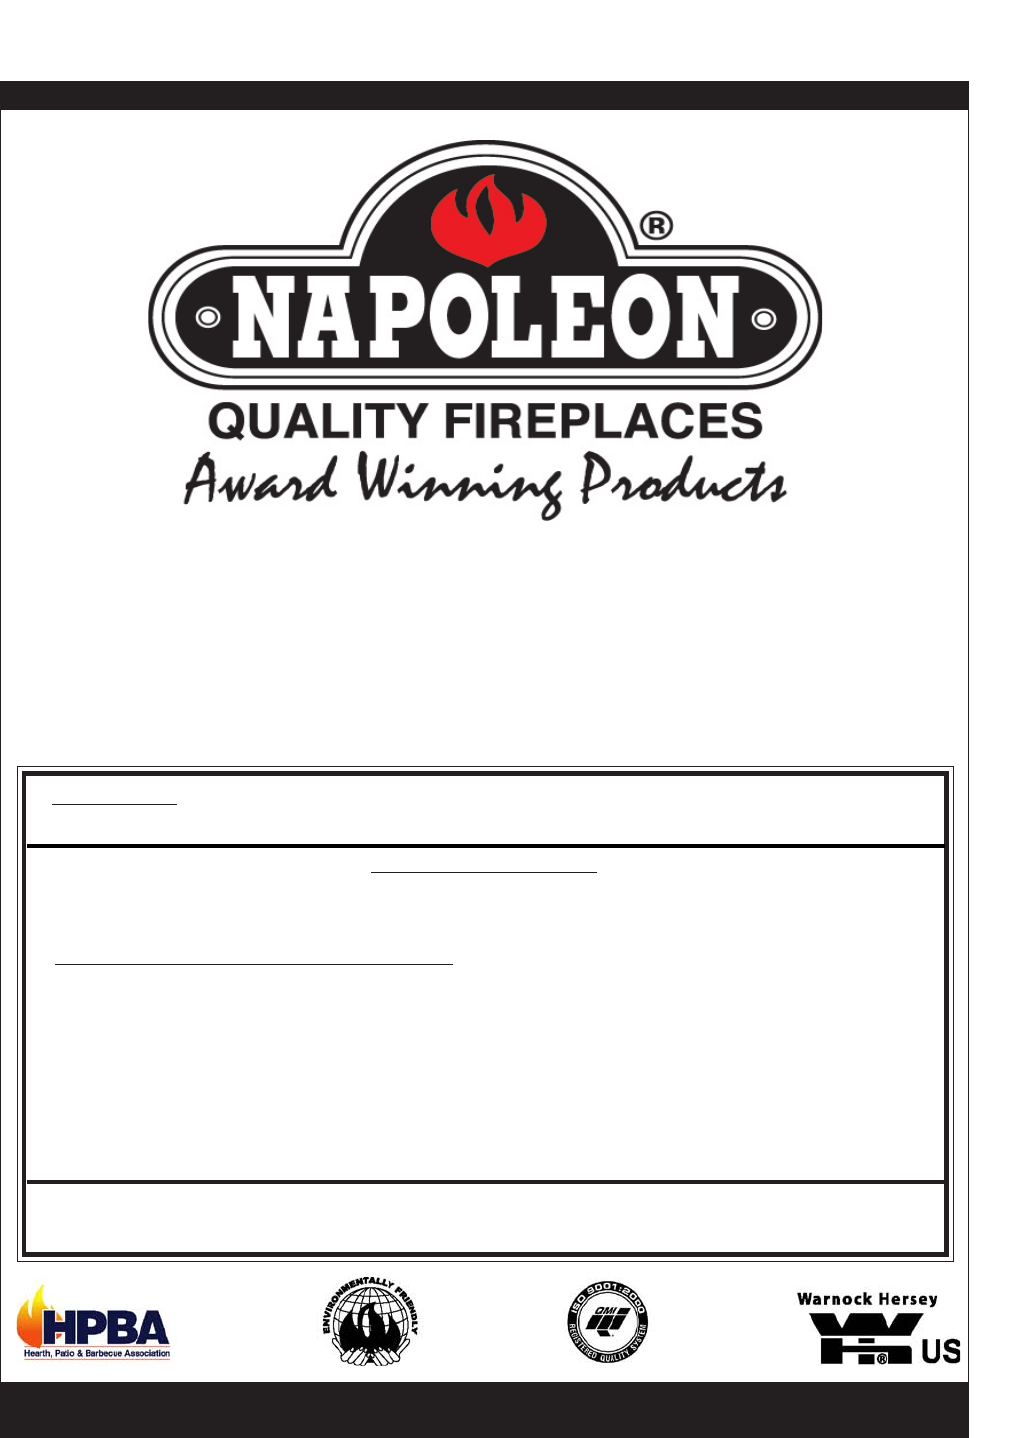 napoleon fireplaces indoor fireplace gvf40n user guide manualsonline